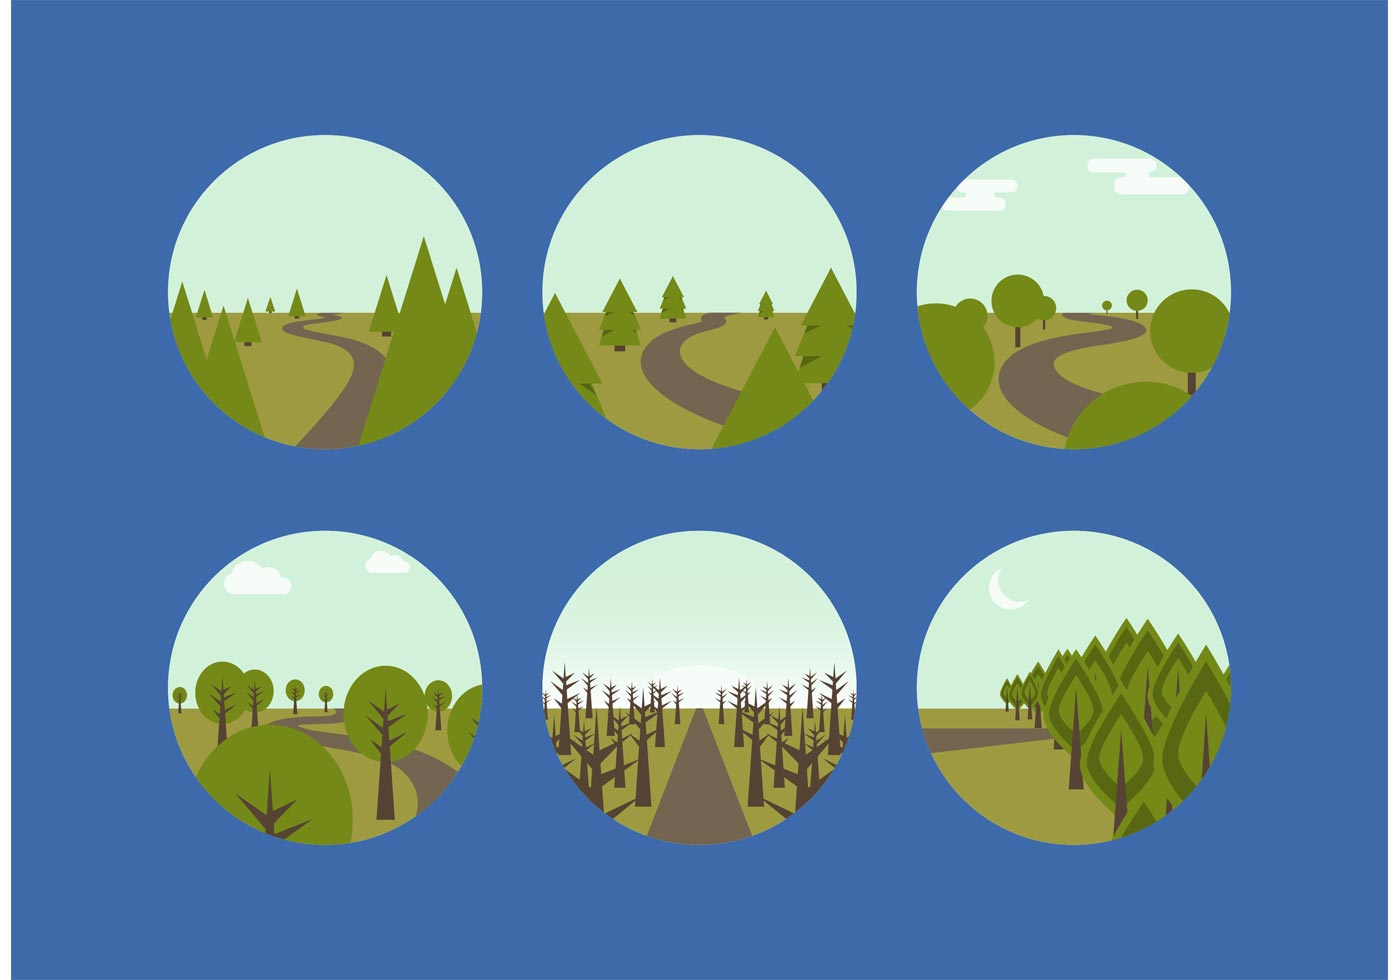 free vector woodland paths download free vector art